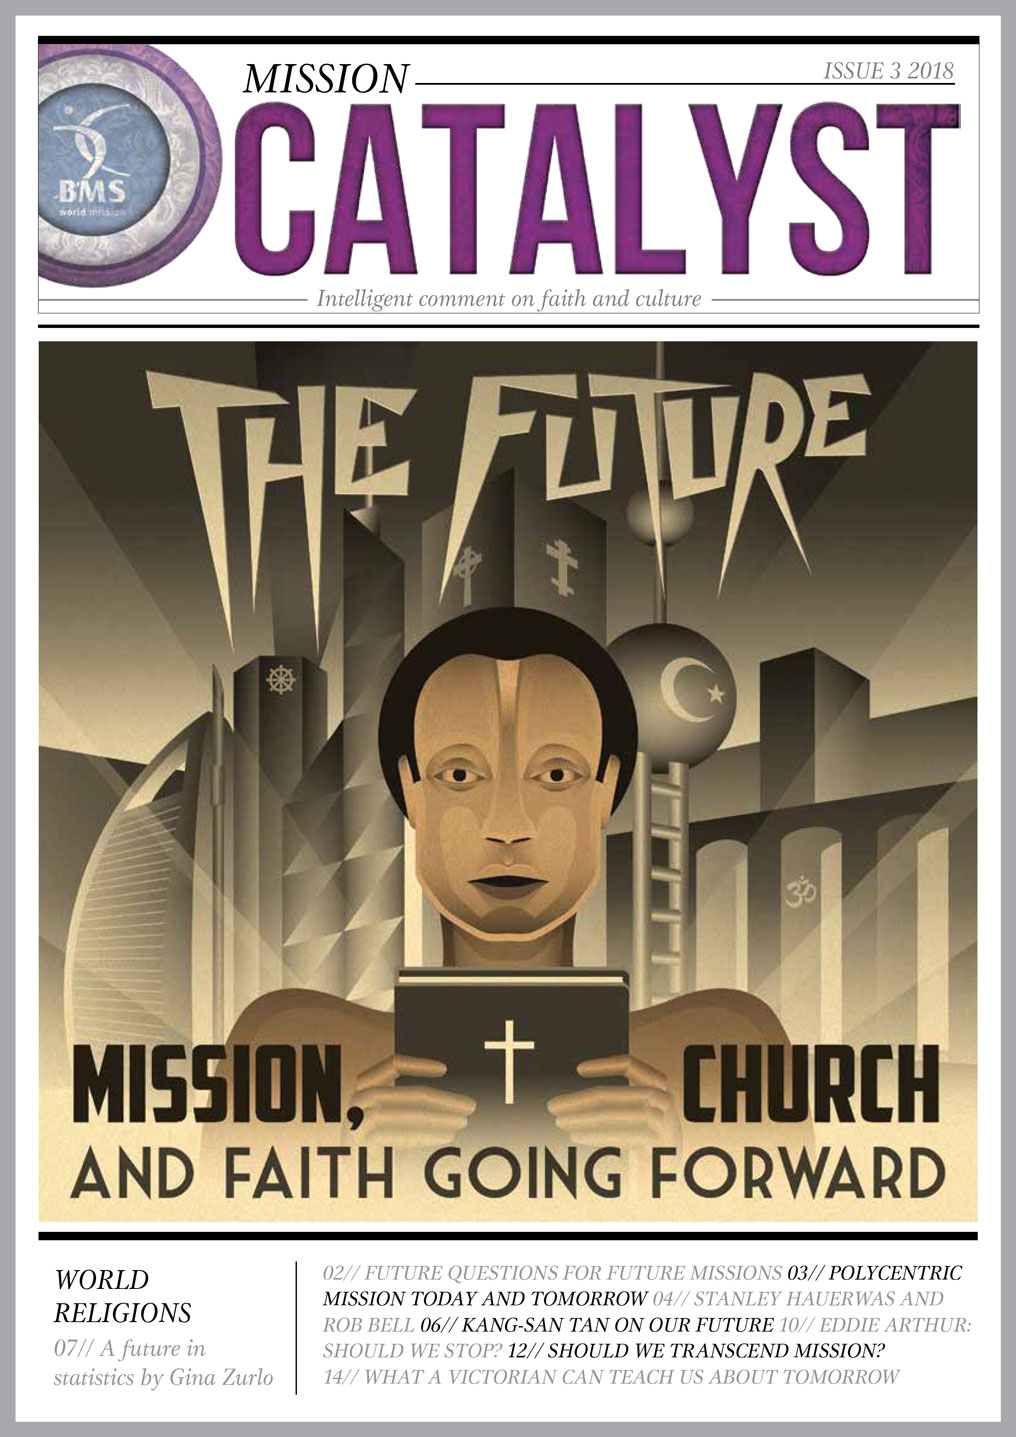 Cover pic of Mission Catalyst: The Future, with illustration based on Fritz Lang's film Metropolis, featuring a robot-like person holding a Bible